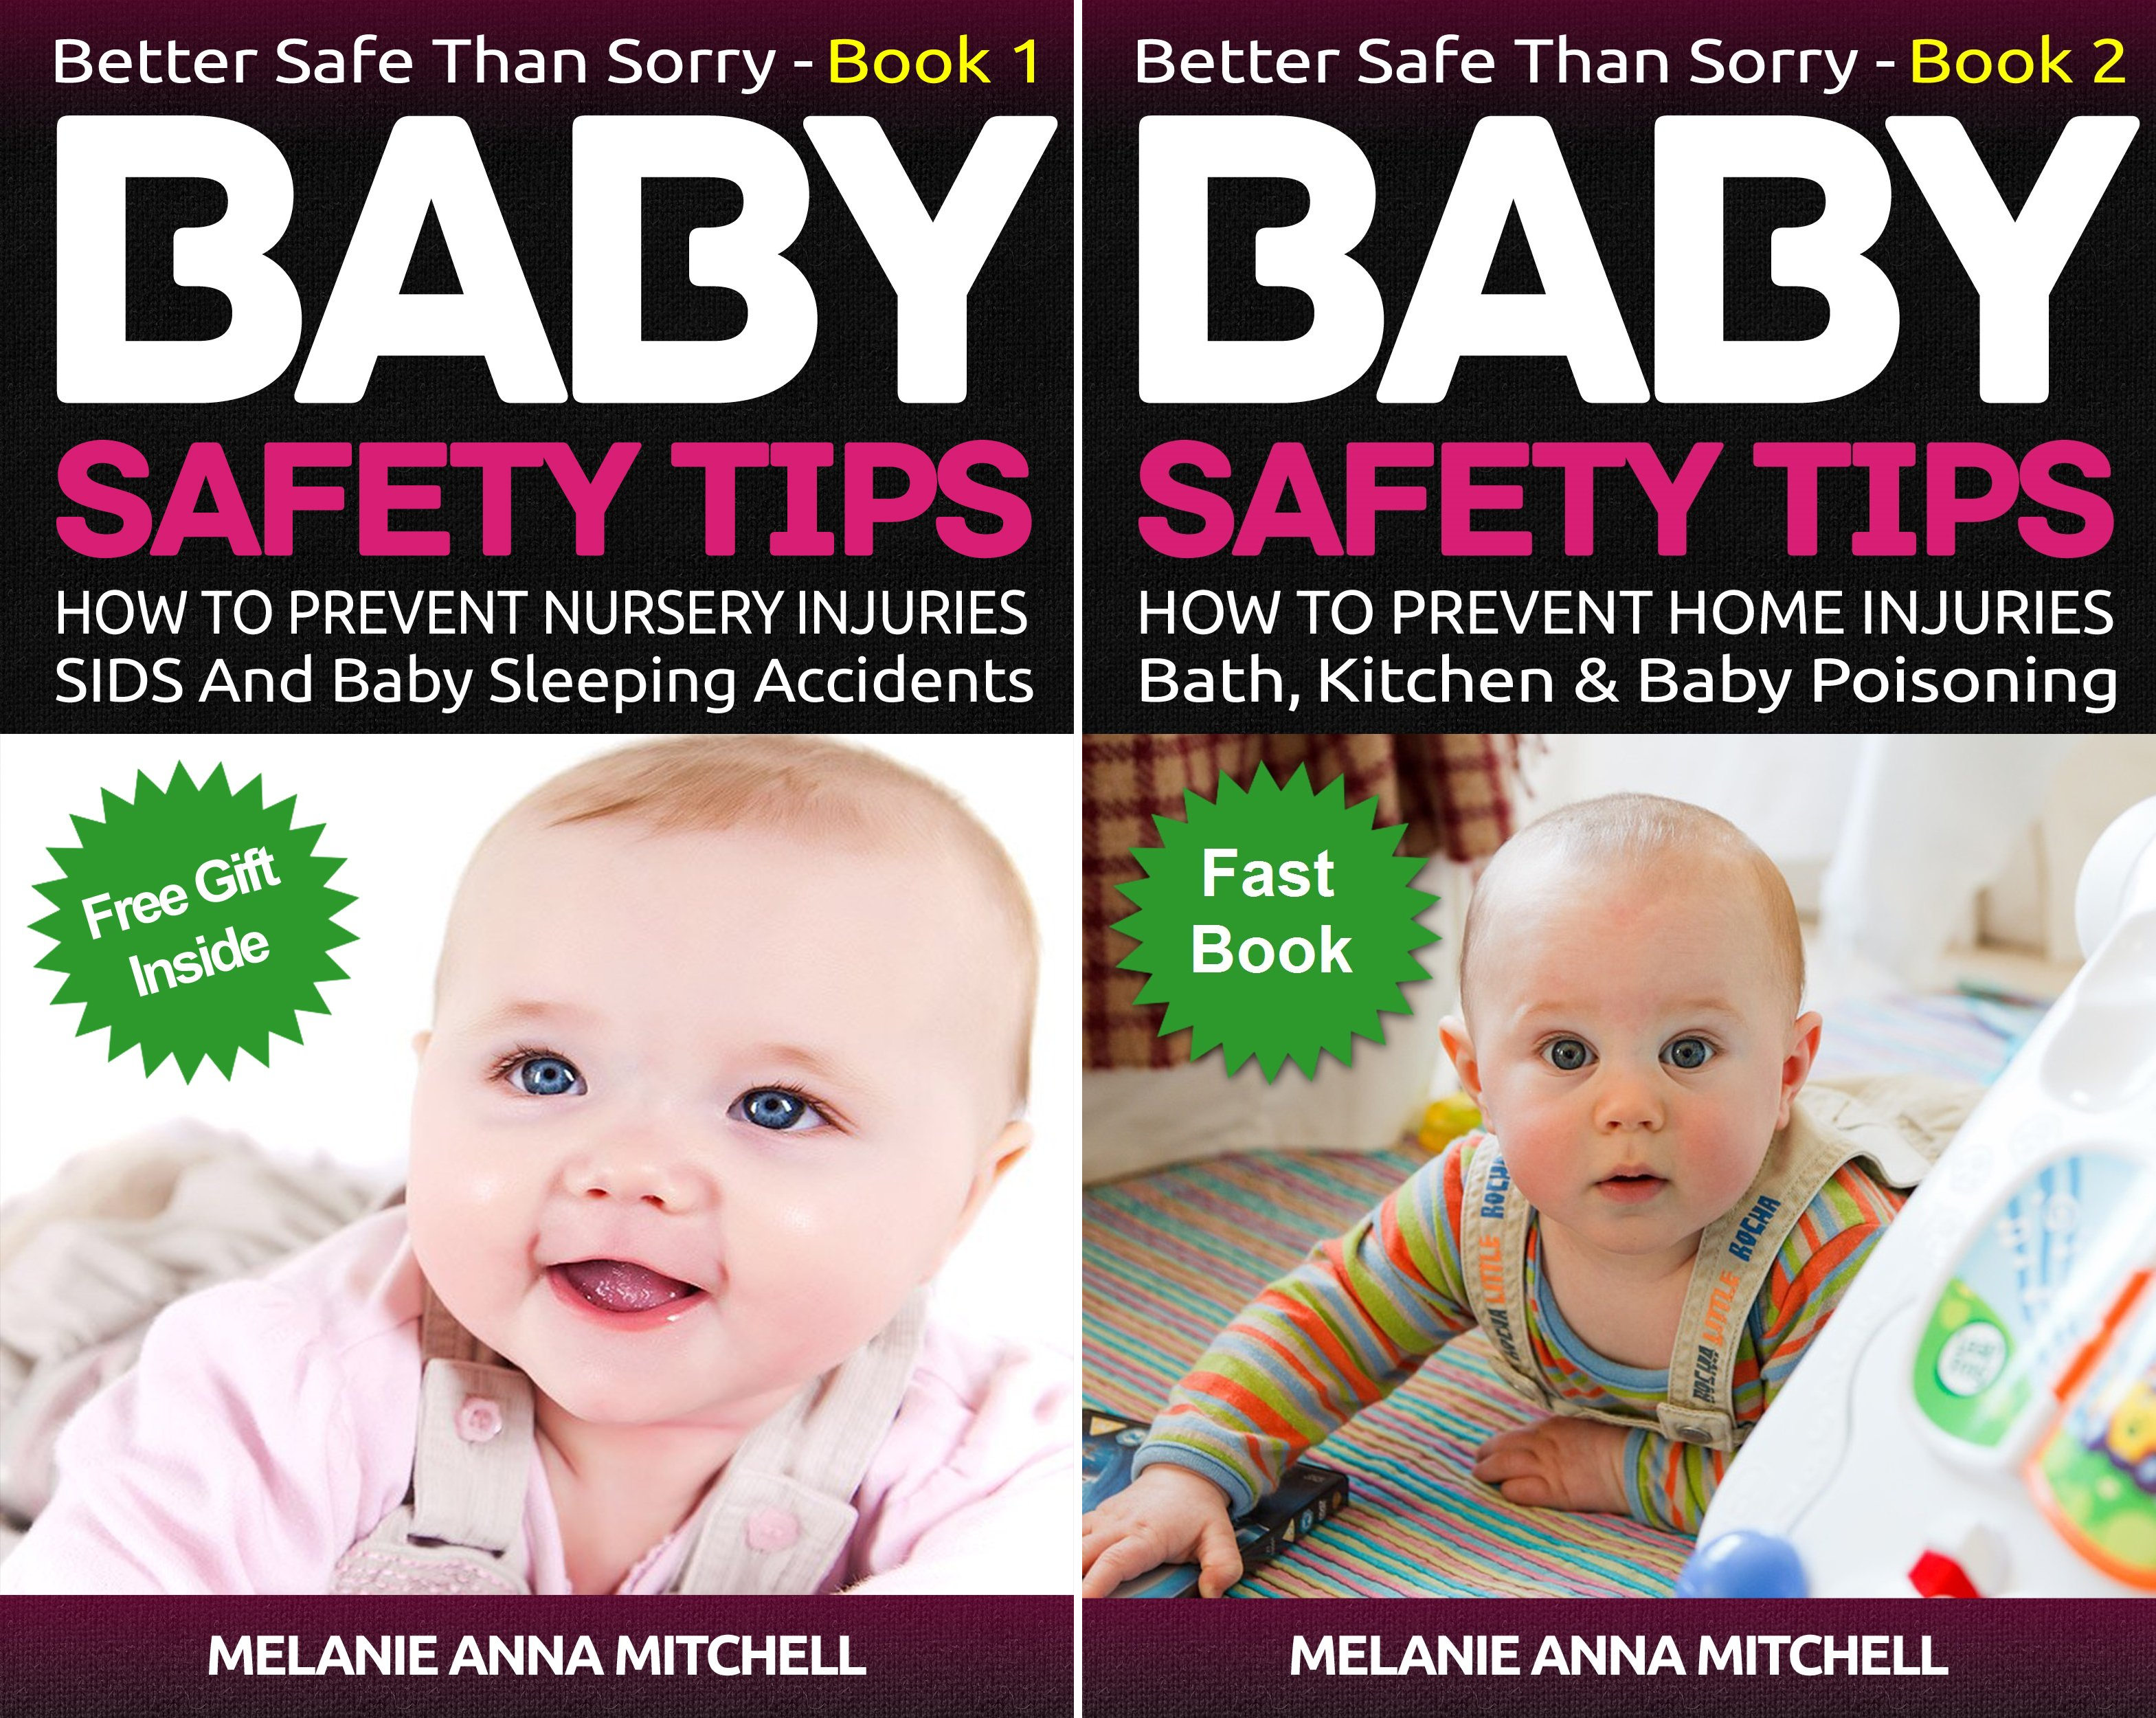 Better Safe Than Sorry (2 Book Series)